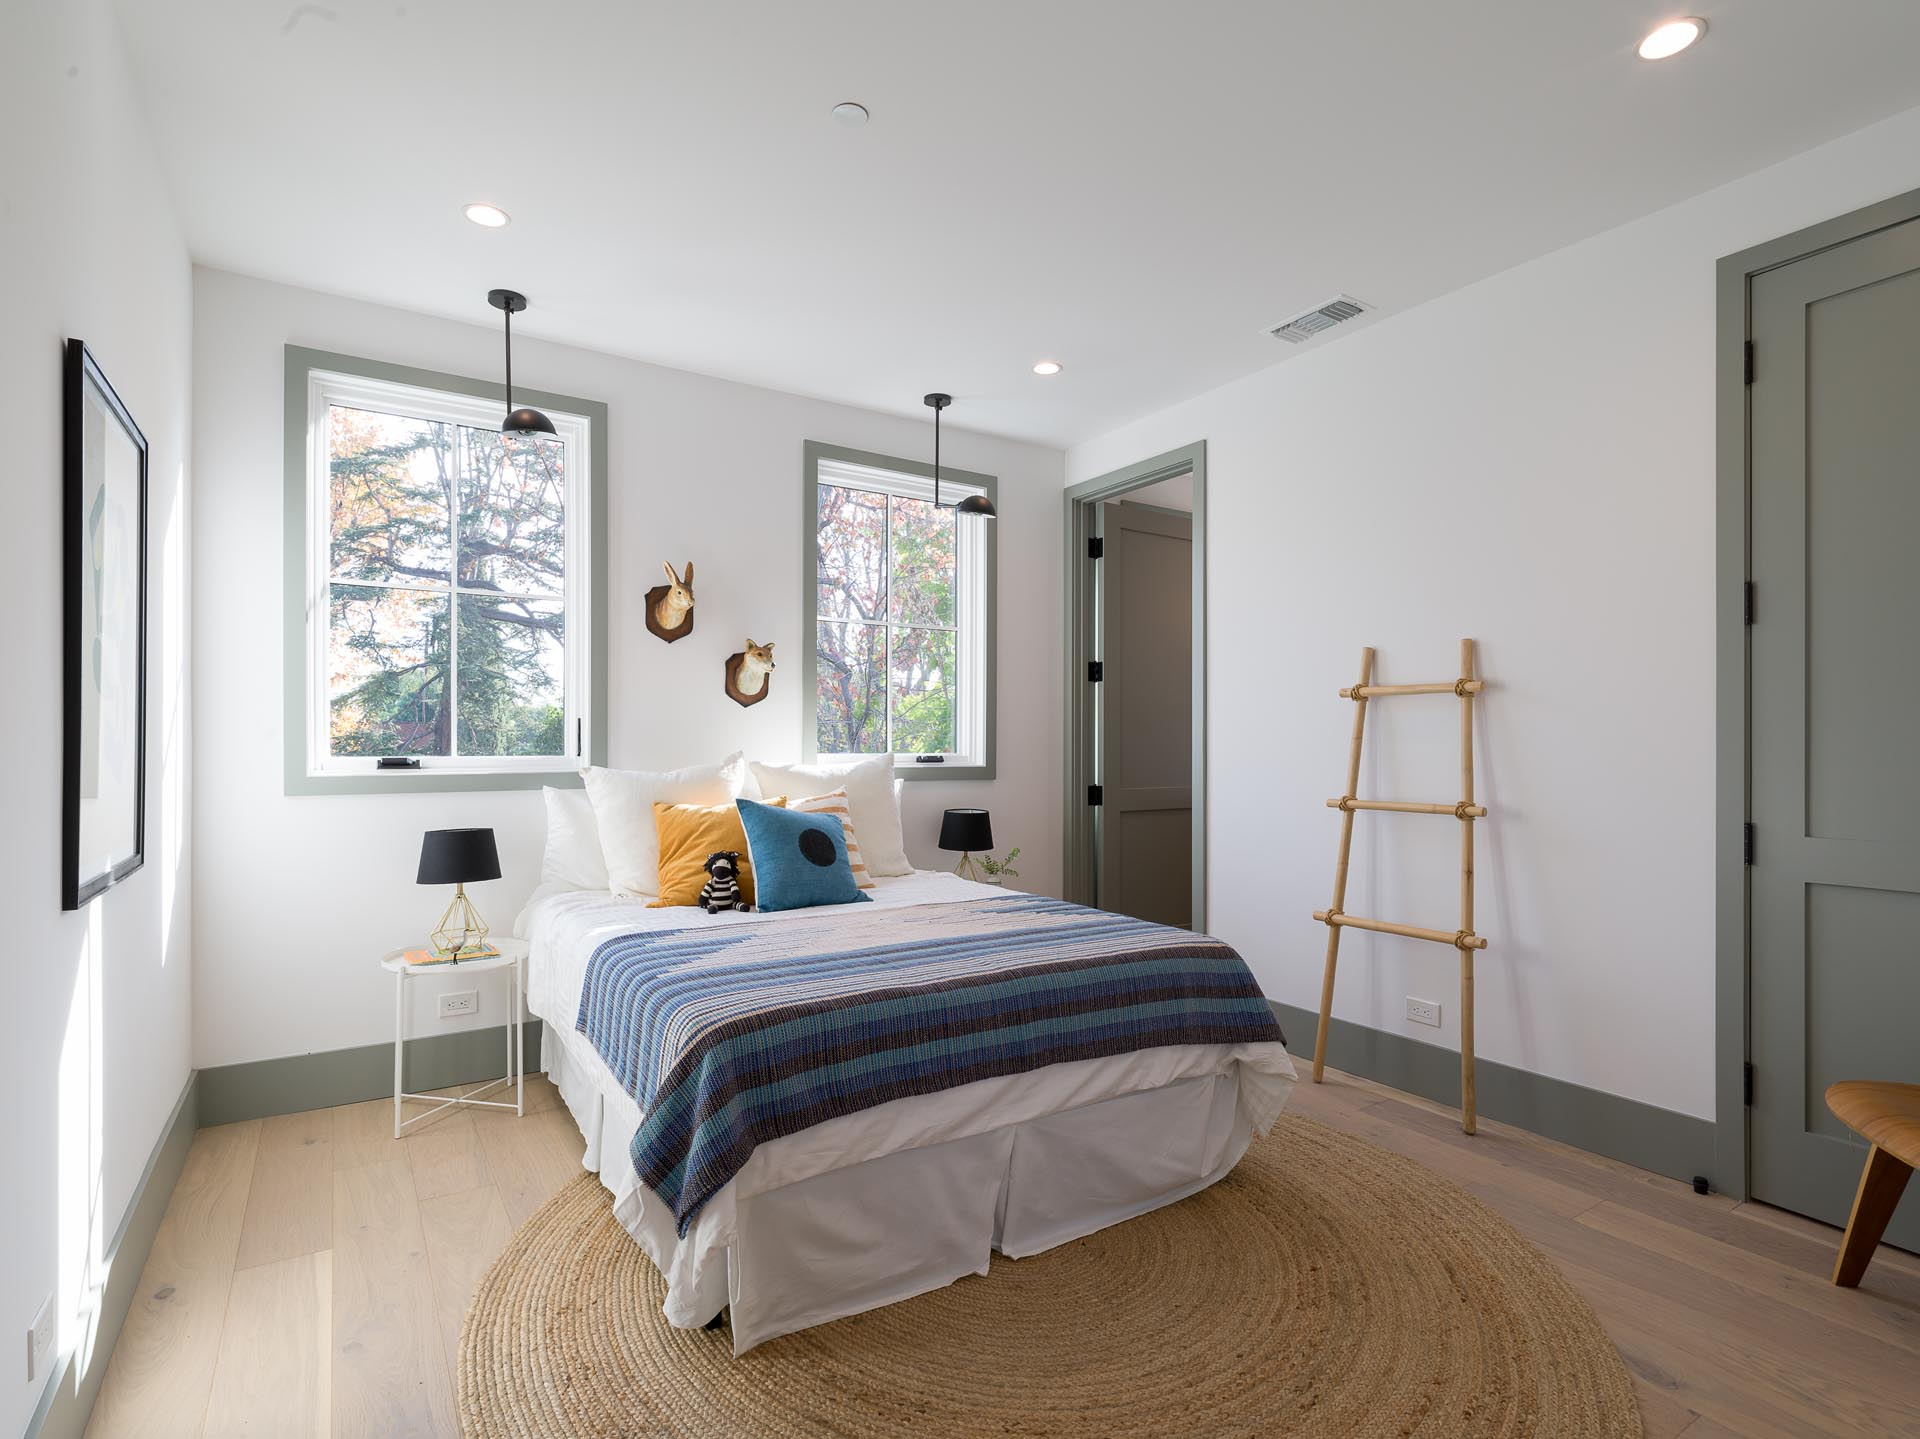 A contemporary bedroom with white walls, wood floors, and gray trim.